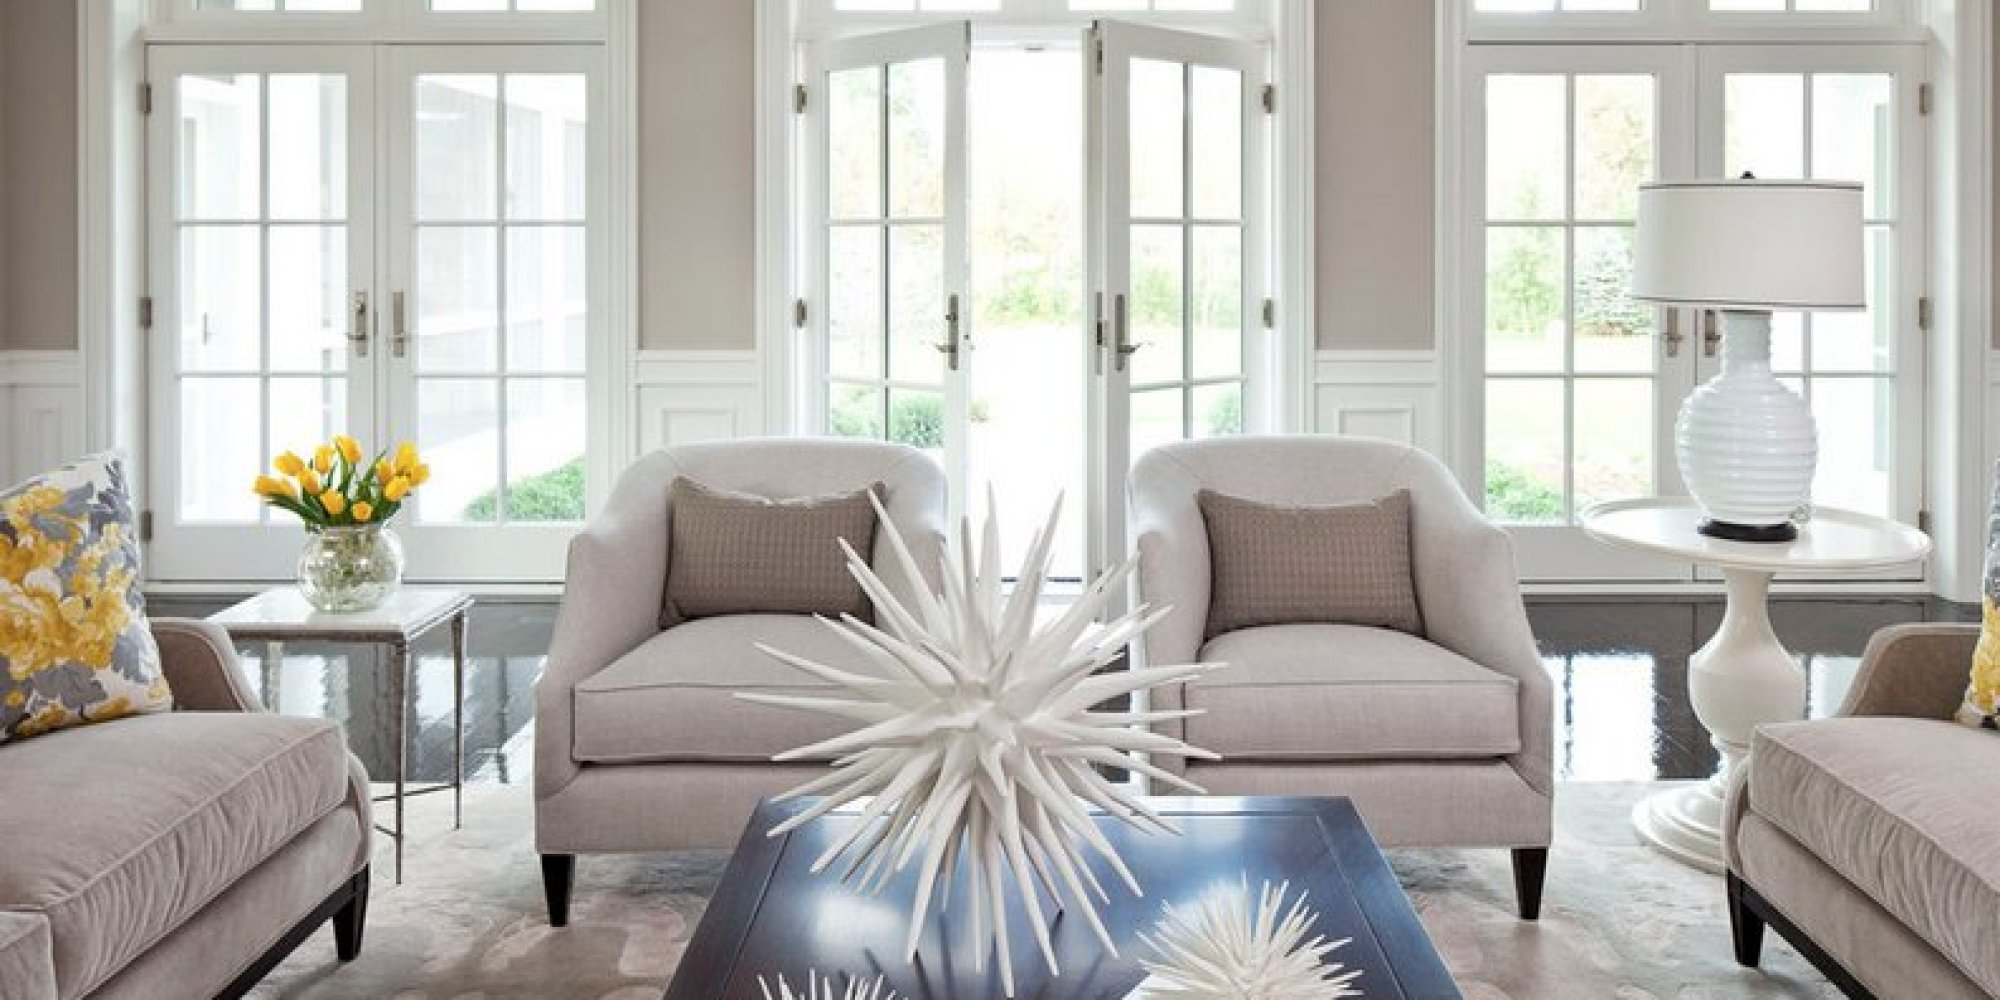 The 8 best neutral paint colors that 39 ll work in any home for Shades of neutral colors